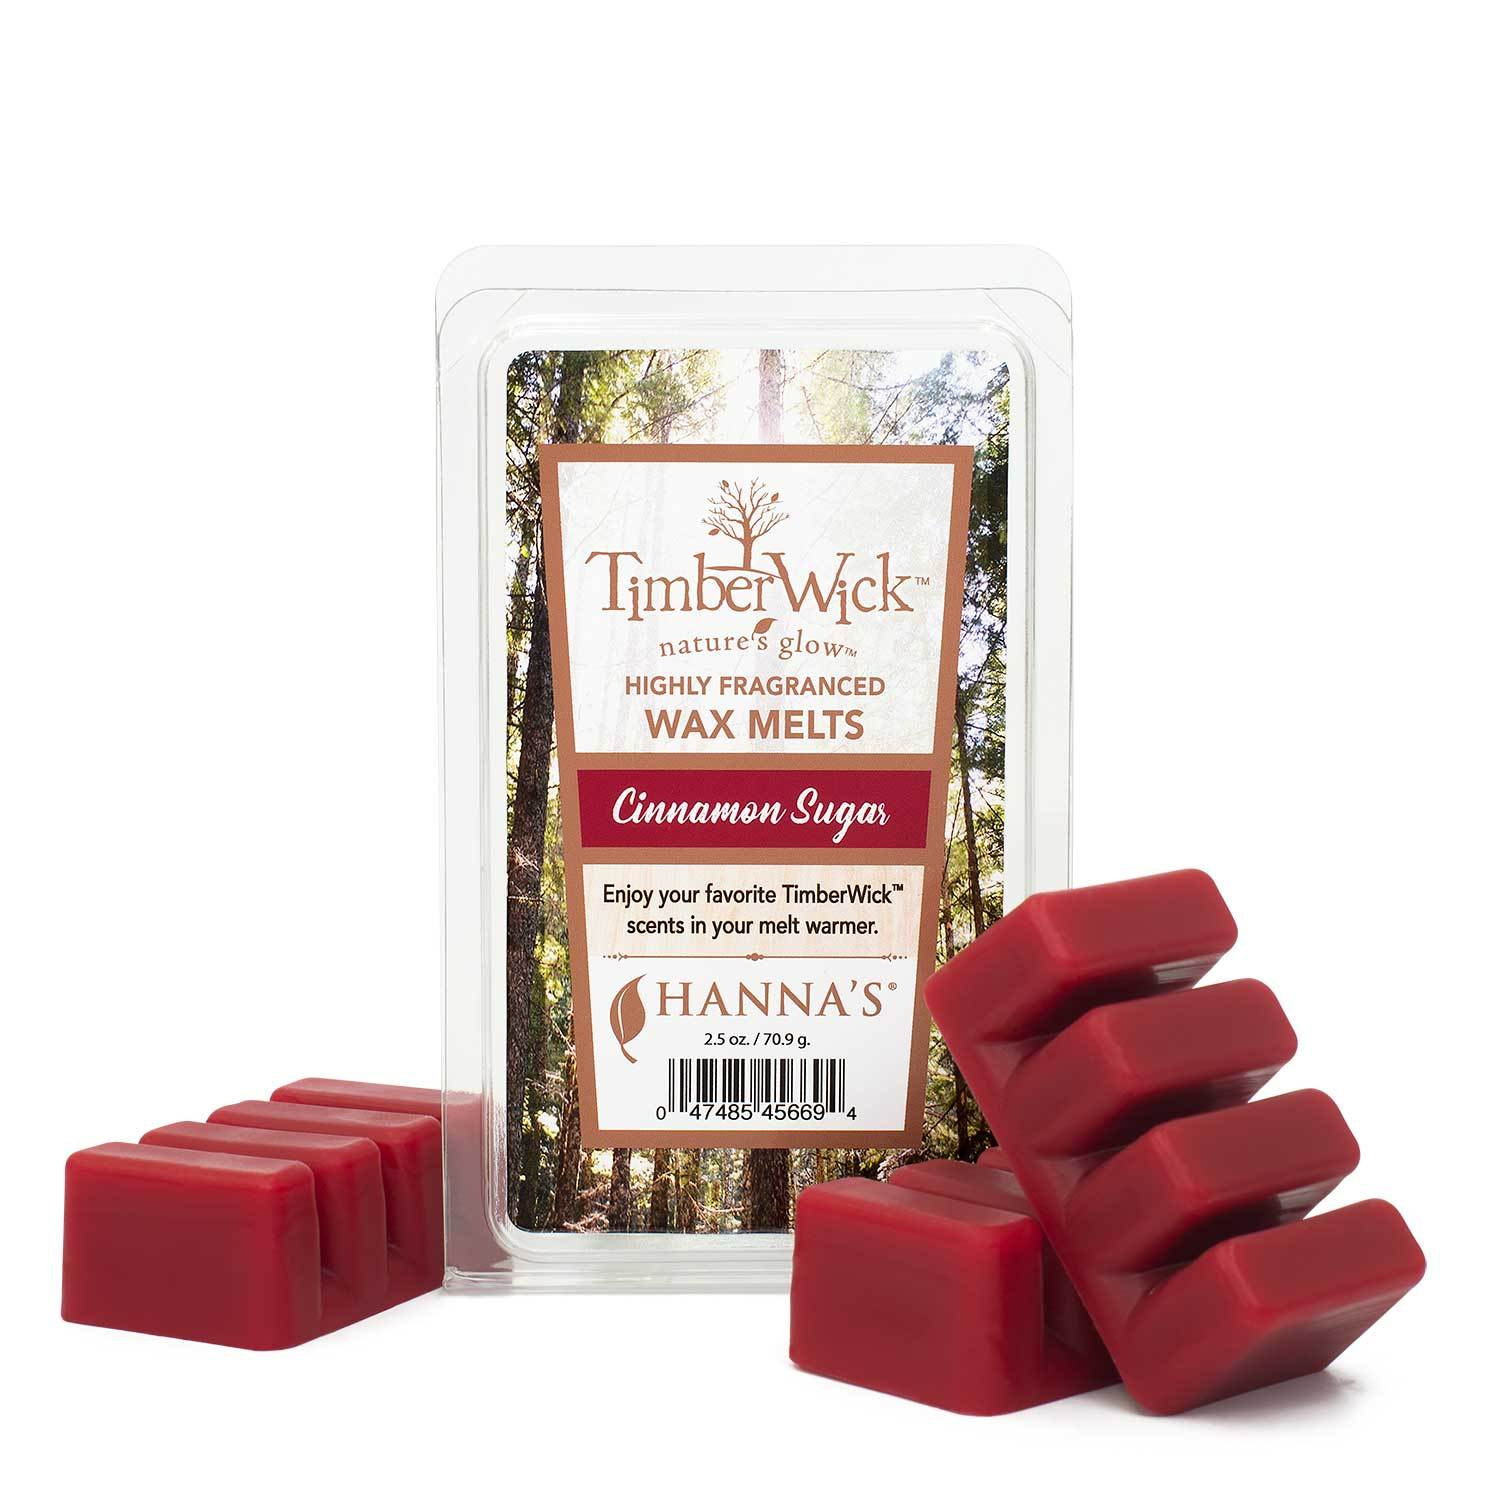 Timberwick Cinnamon Sugar Scented Wax Melts